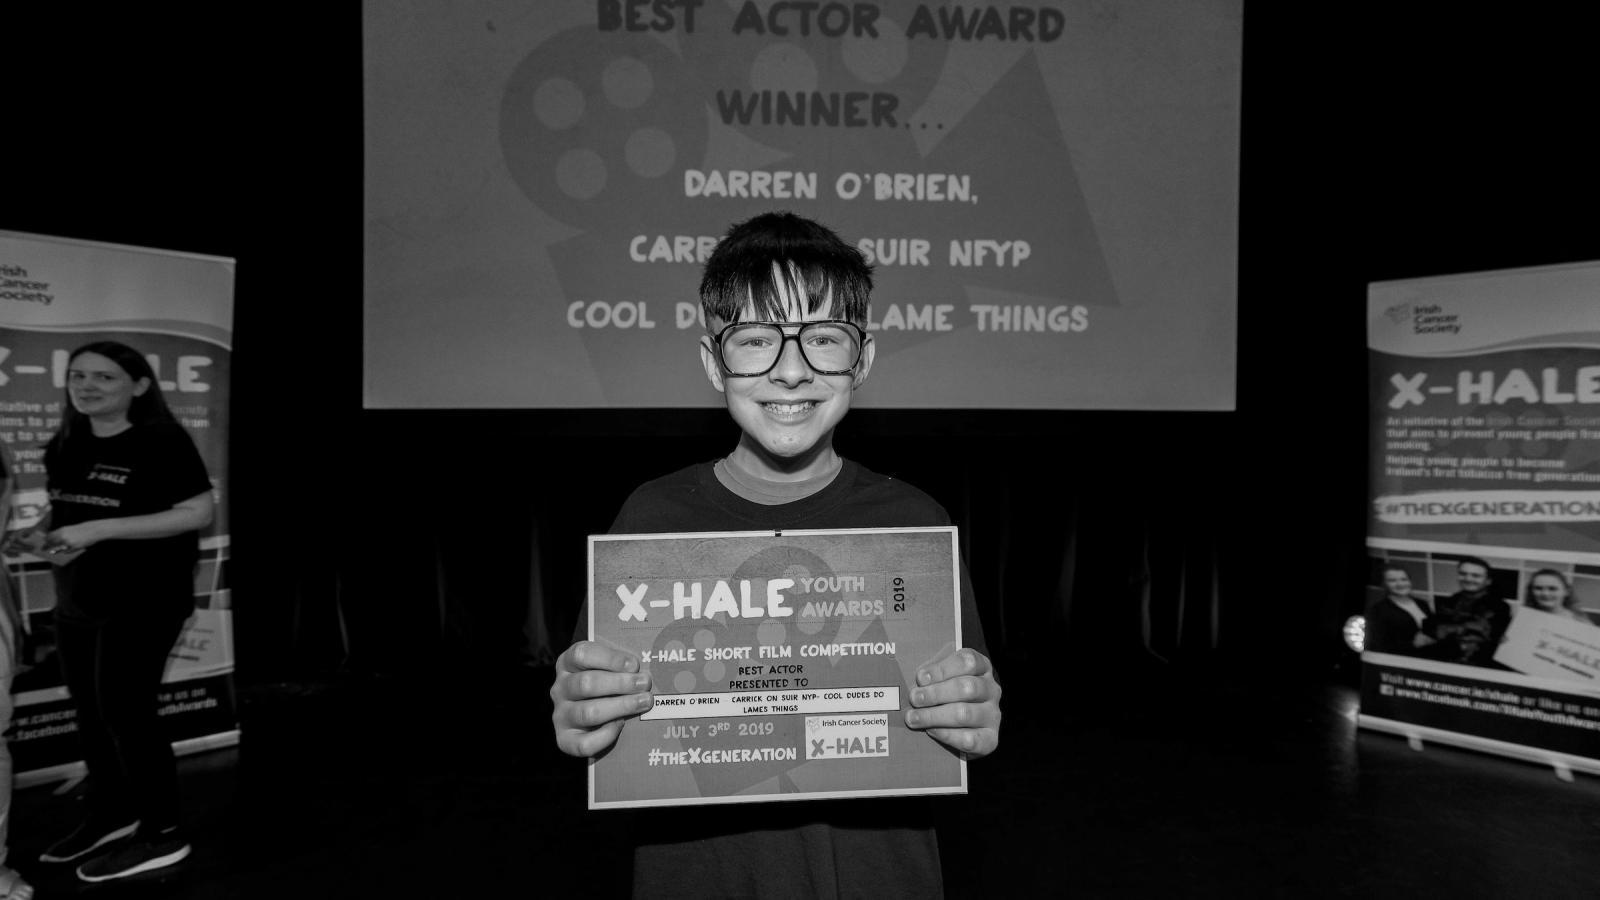 X-HALE Youth Awards